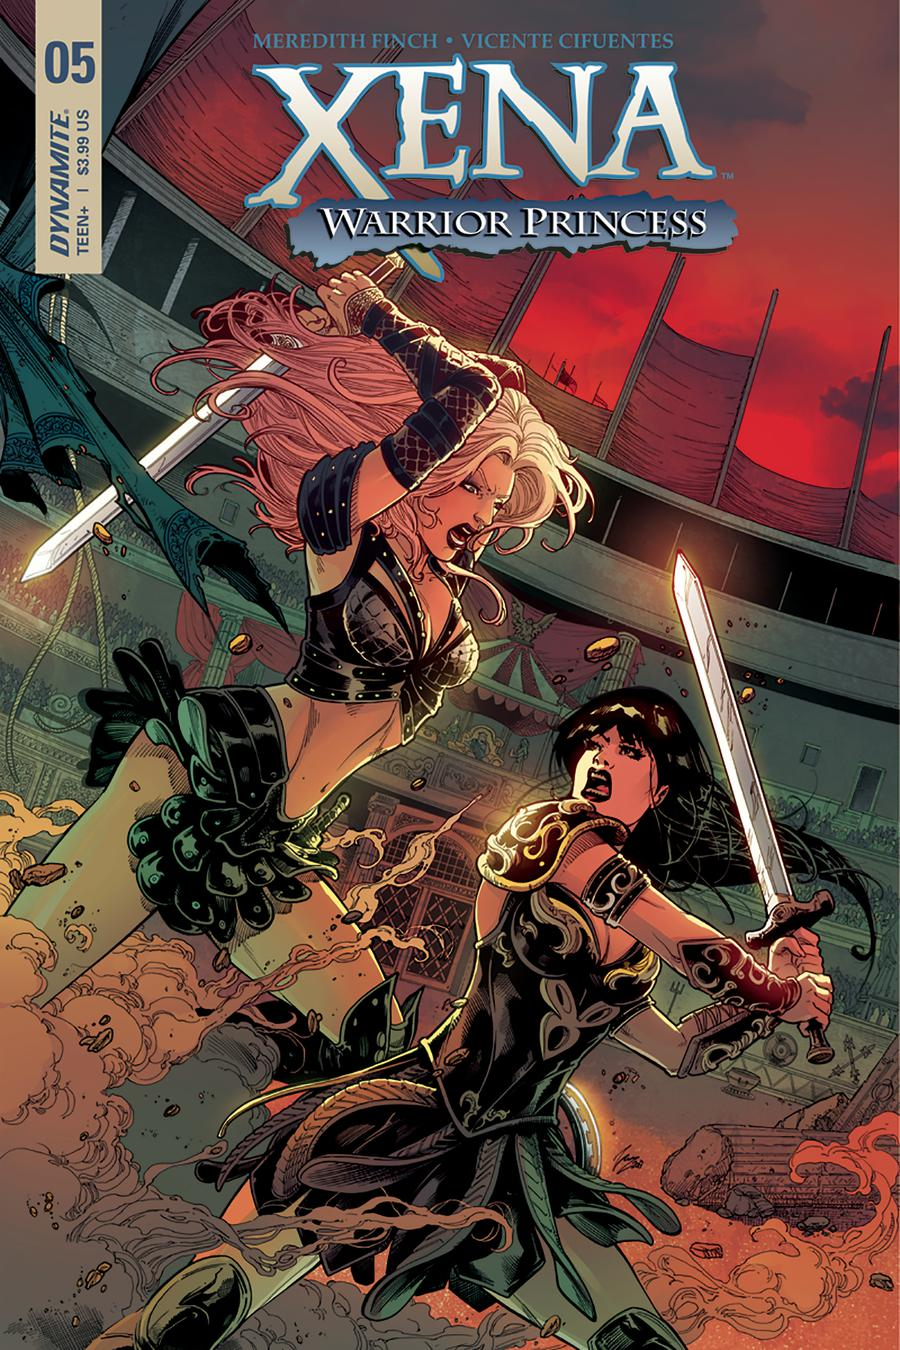 Xena Vol 2 #5 Cover B Variant Vicente Cifuentes Cover